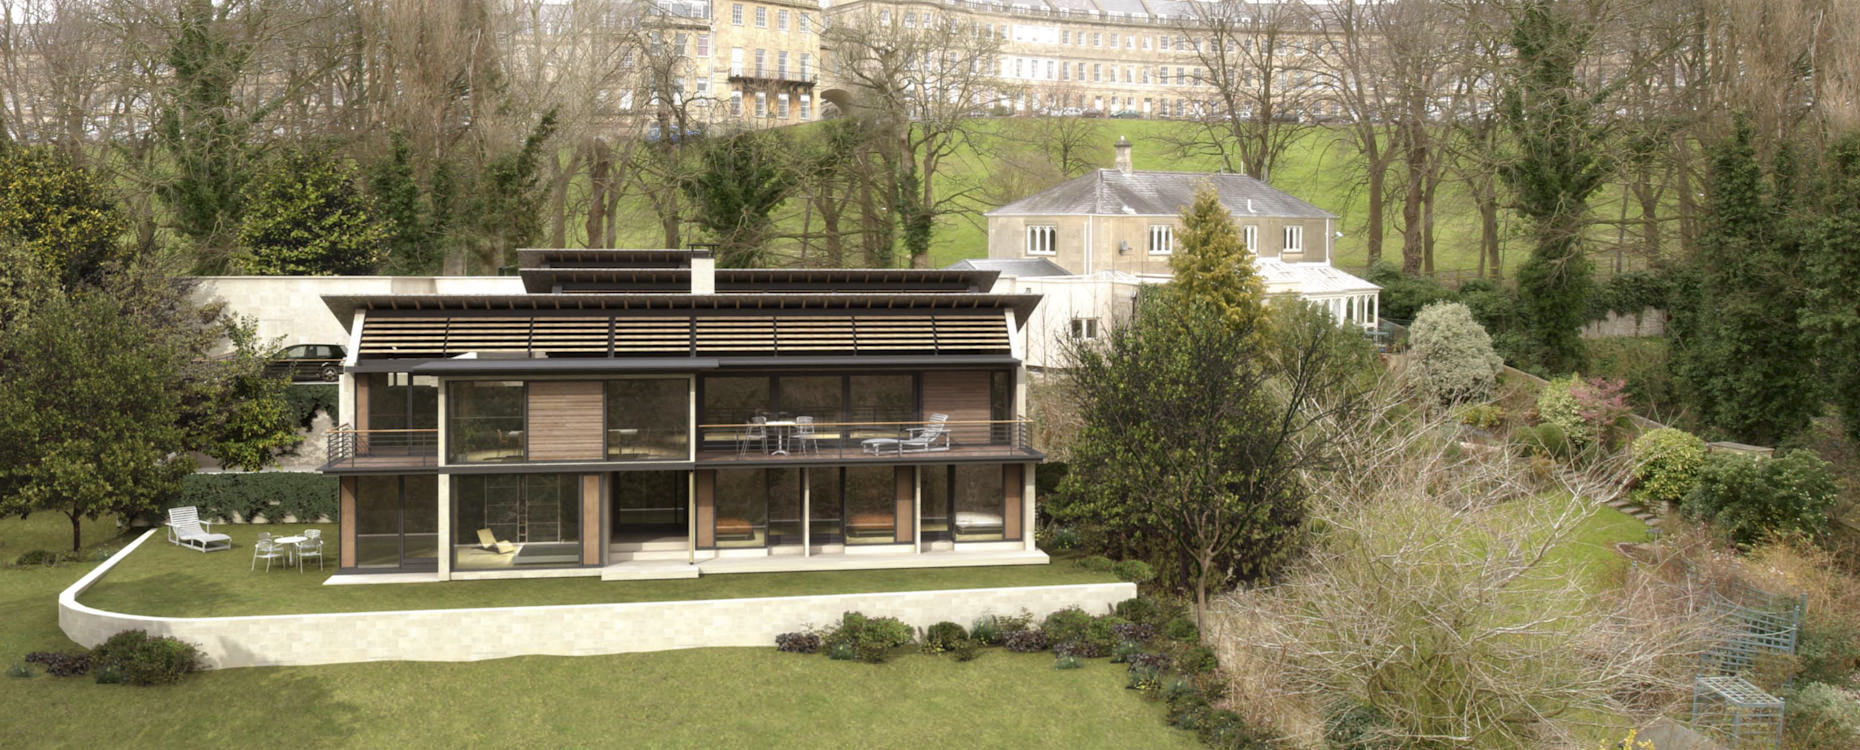 CaSA-All Saints_Bath-Rear elevation-cam 1-BAN.JPG